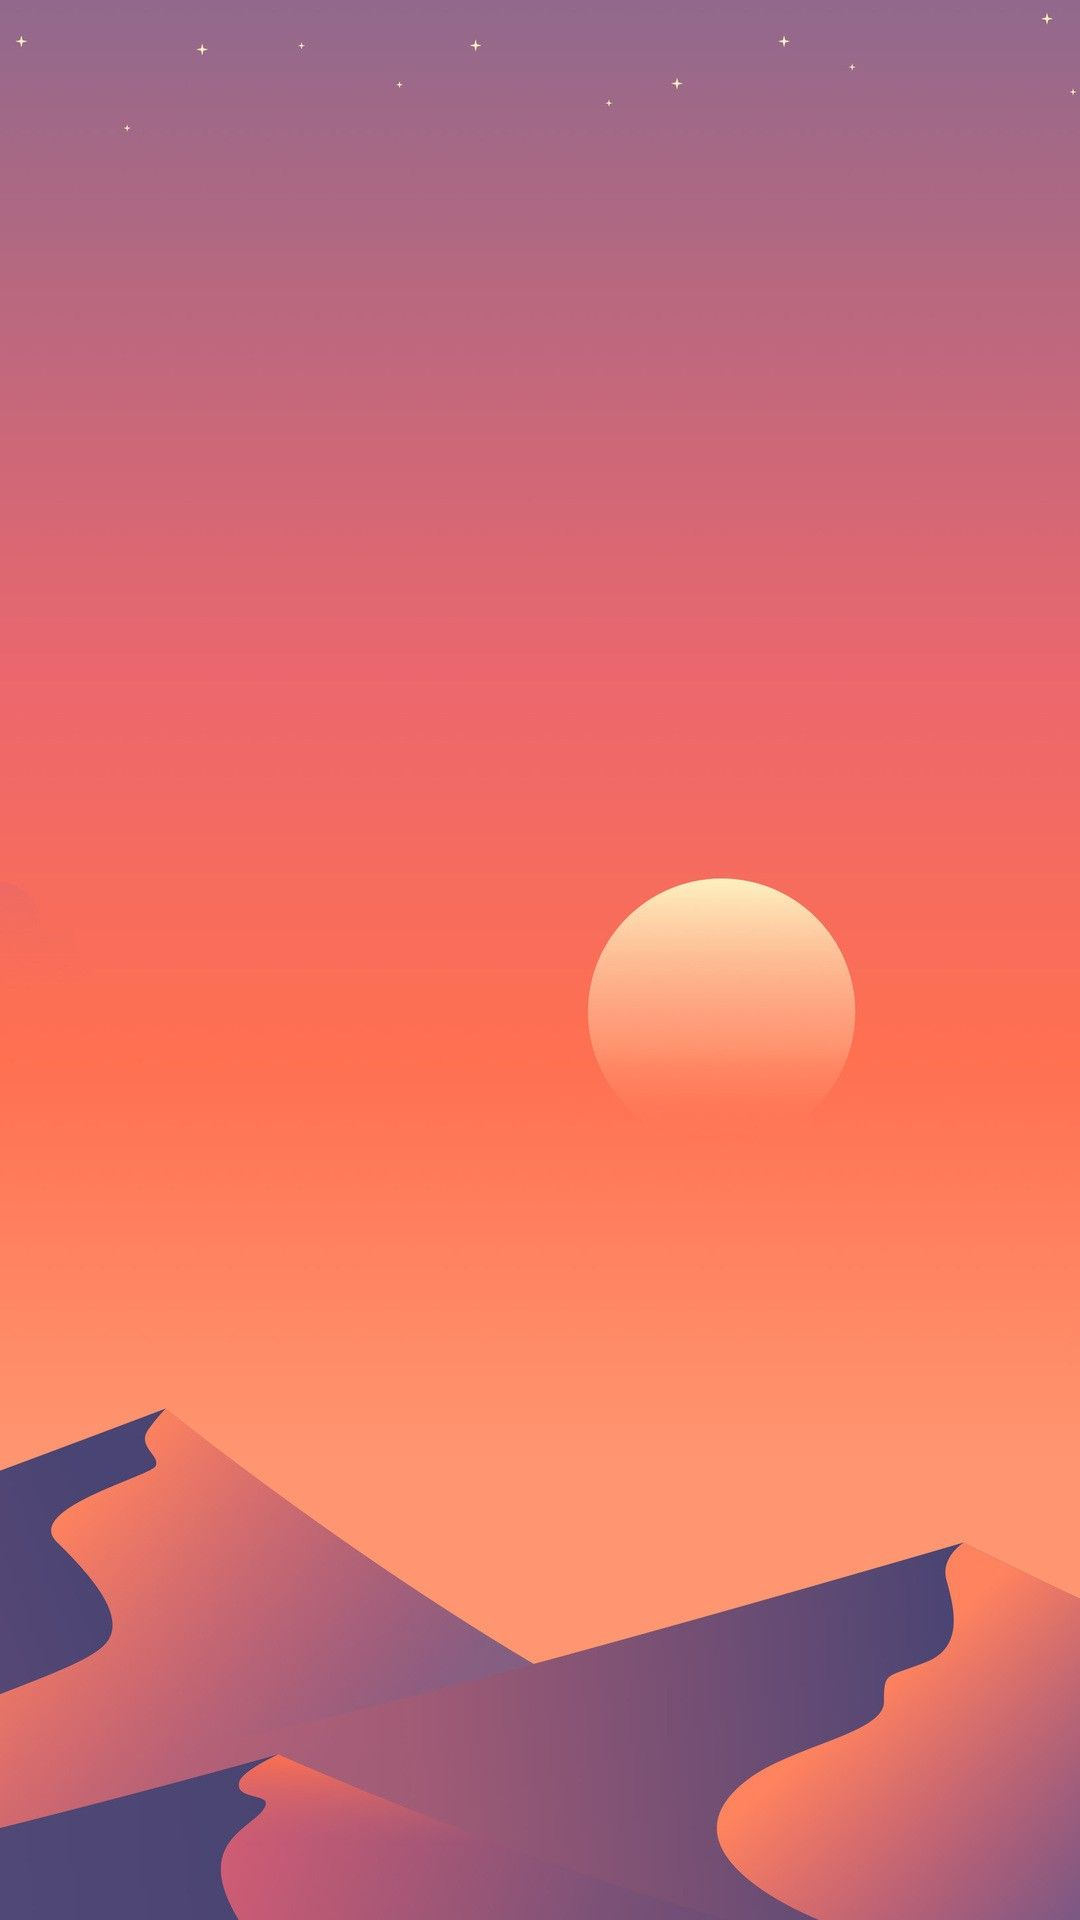 Xiaomi 4K Minimalistic Phone Wallpapers - Top Free Xiaomi 4K